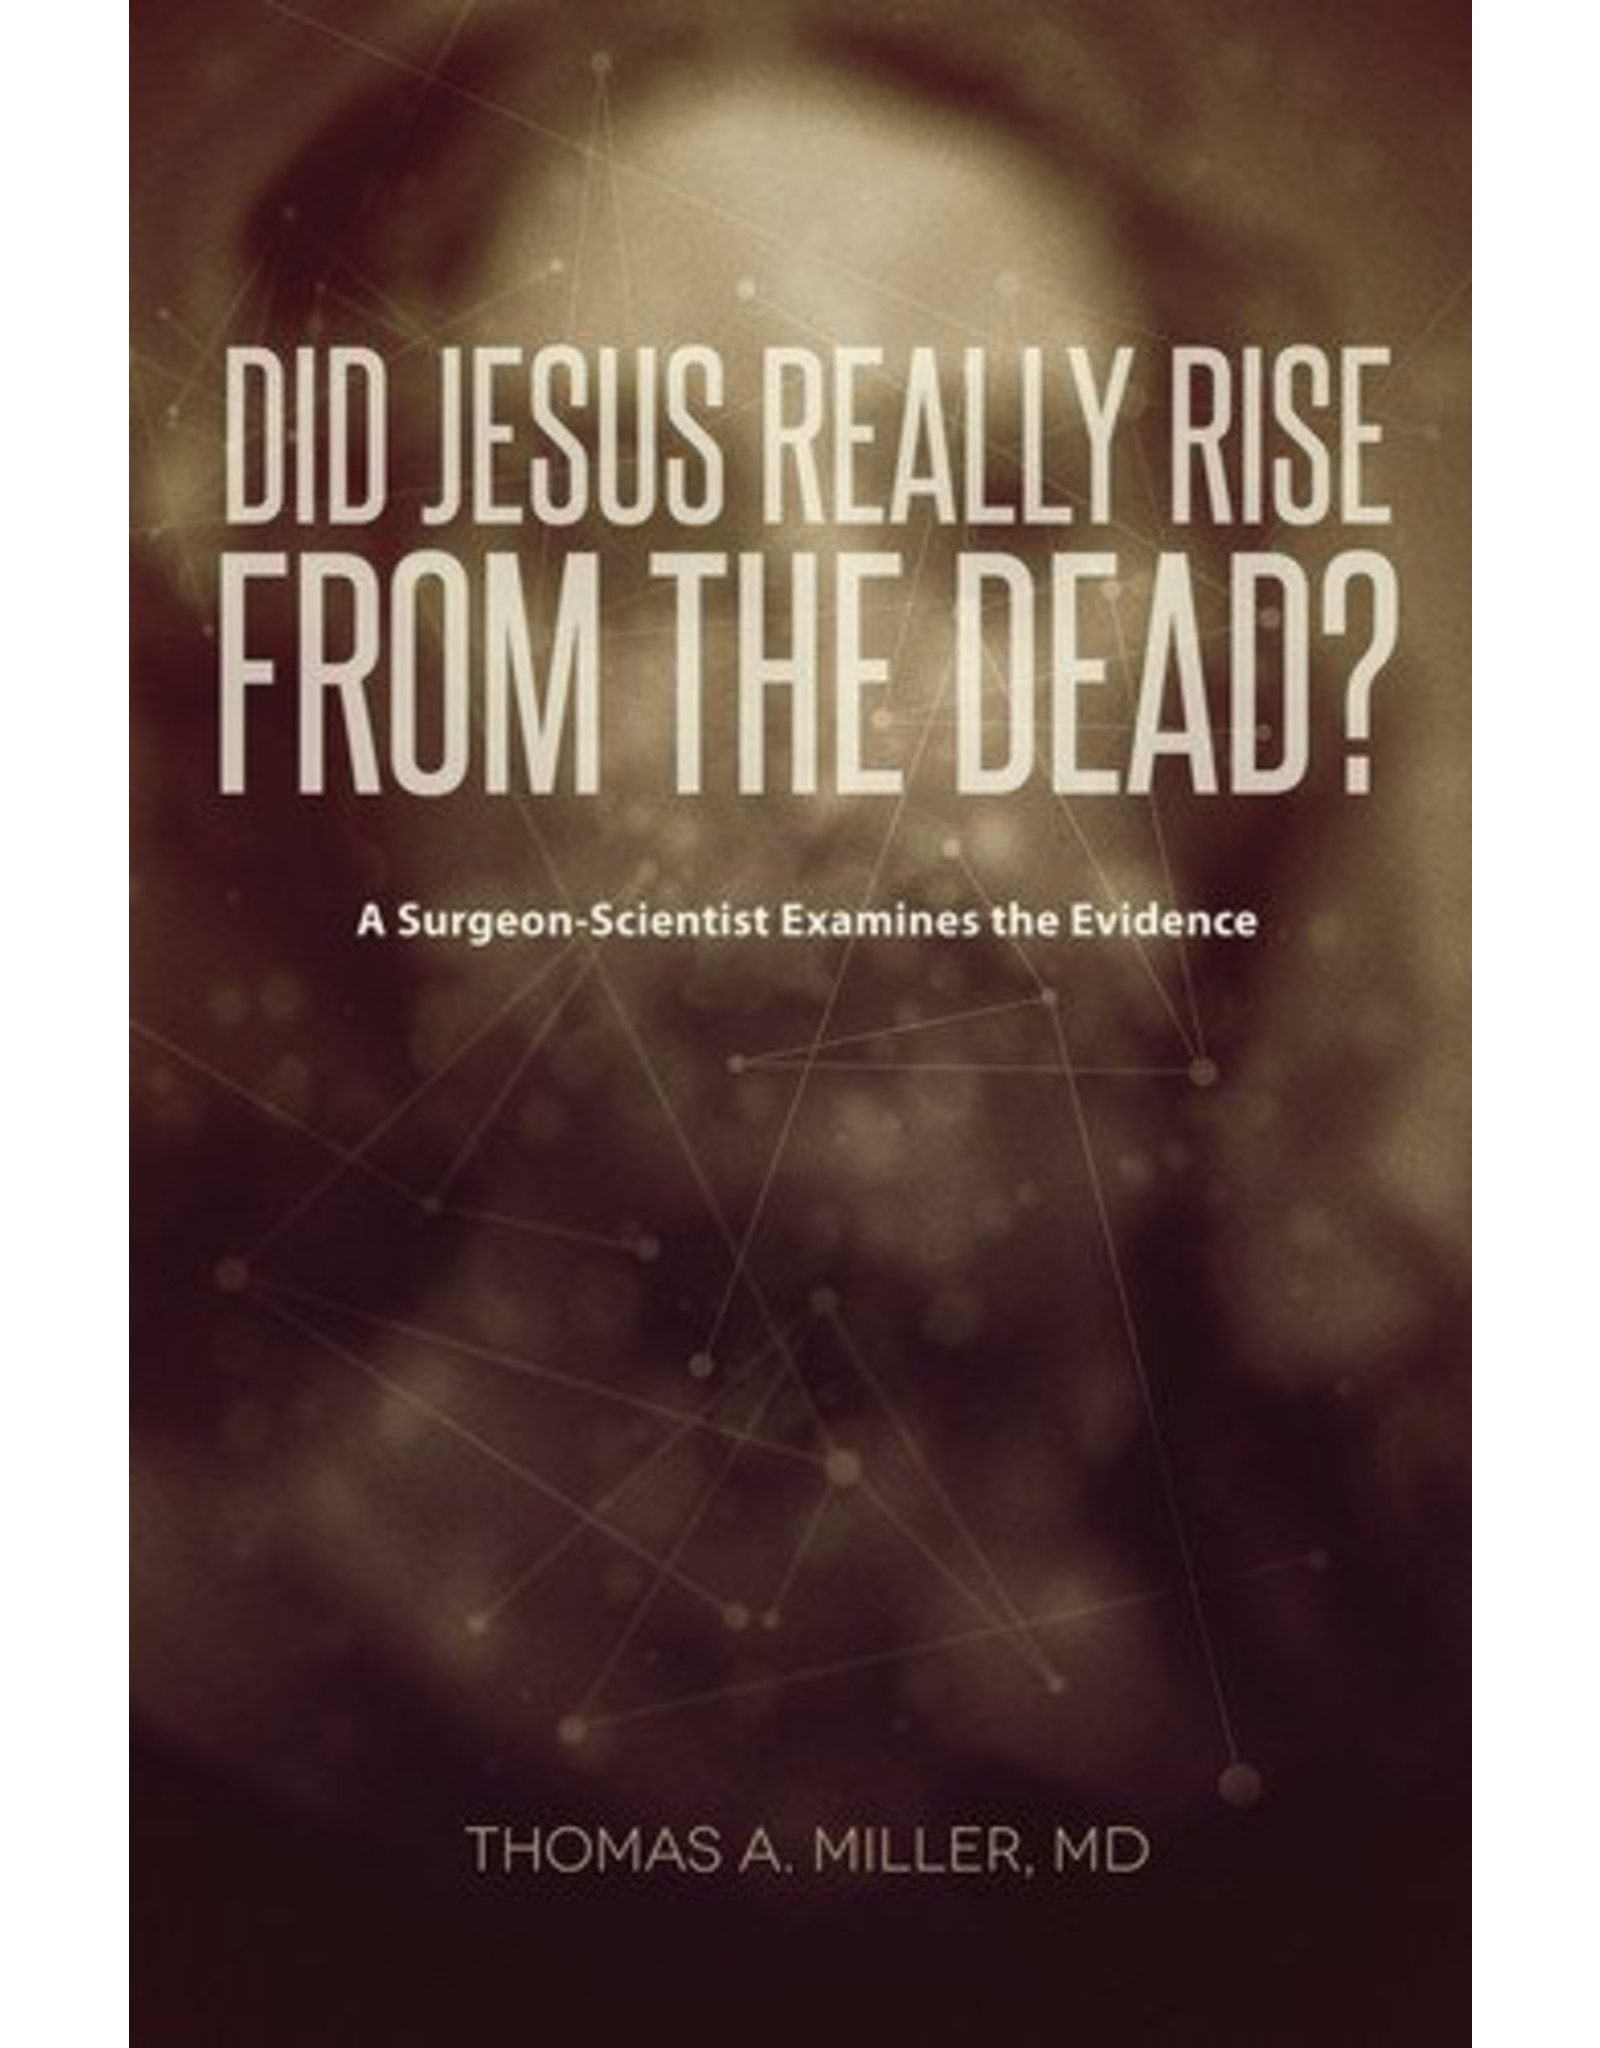 Crossway / Good News Did Jesus Really Rise from the Dead? A Surgeon-Scientist Examines the Evidence